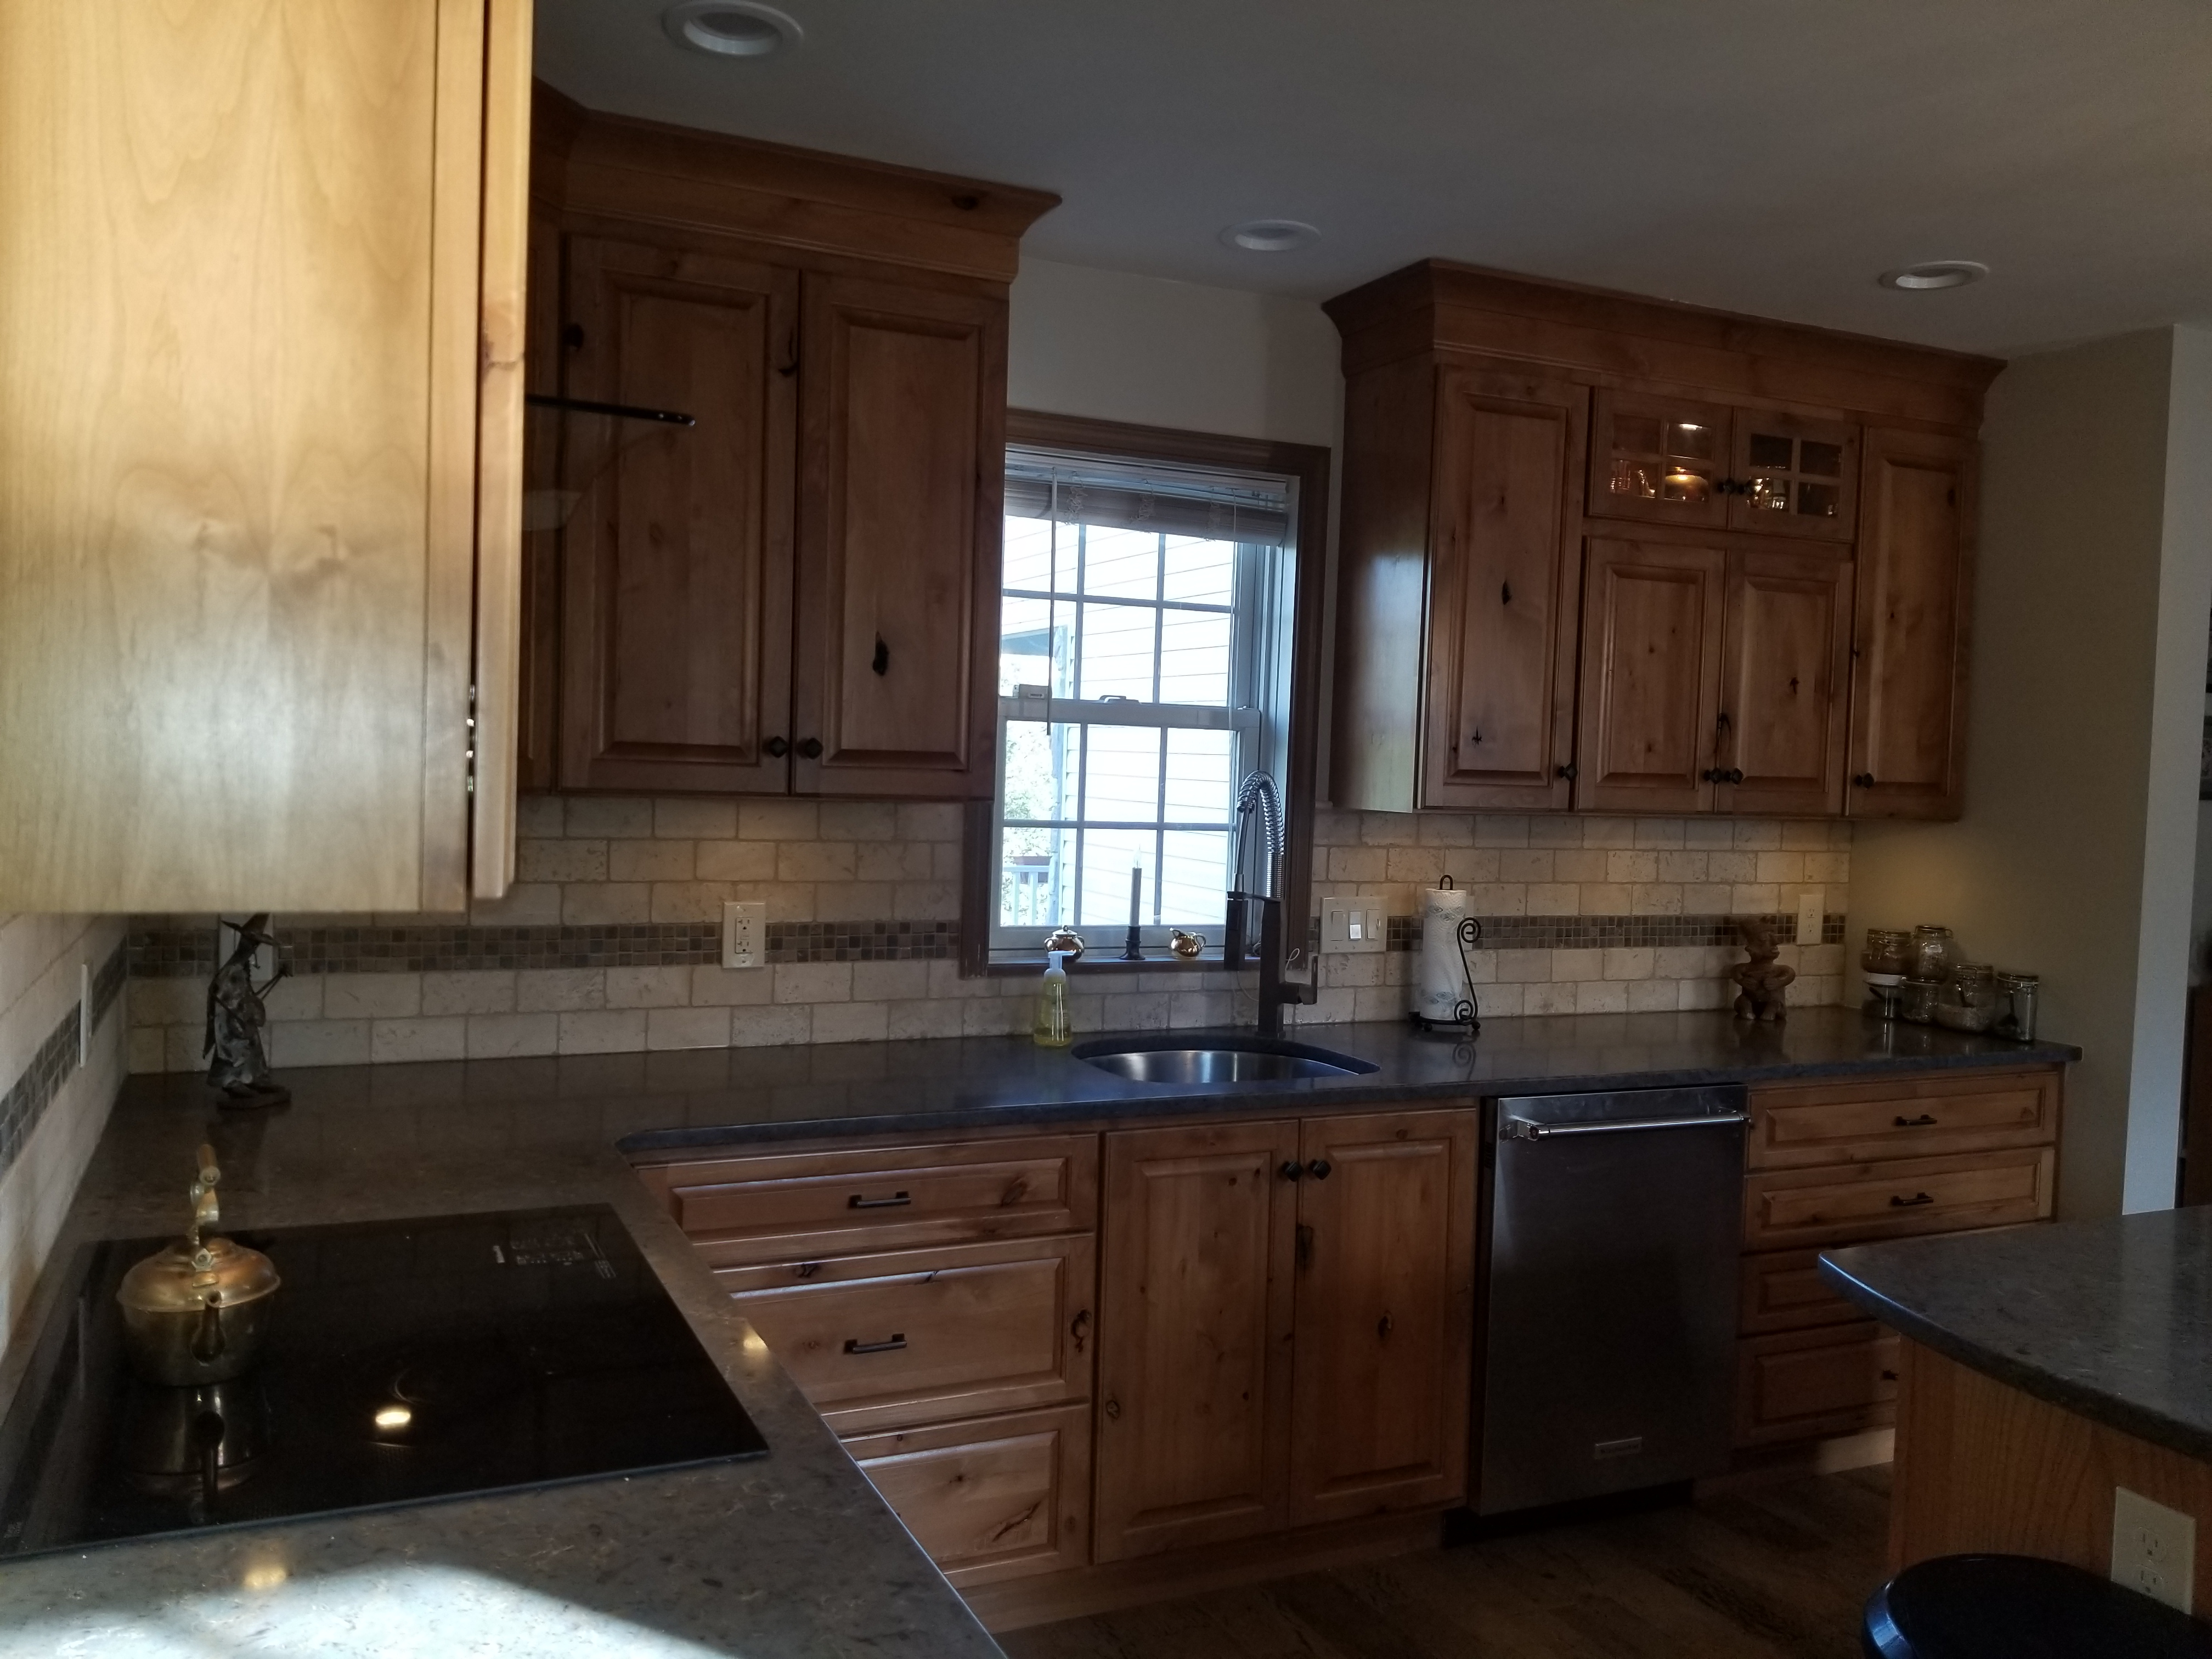 decor countertops floors winfield pa 17889 angies list.htm eastern surfaces  inc reviews allentown  pa angie s list  eastern surfaces  inc reviews